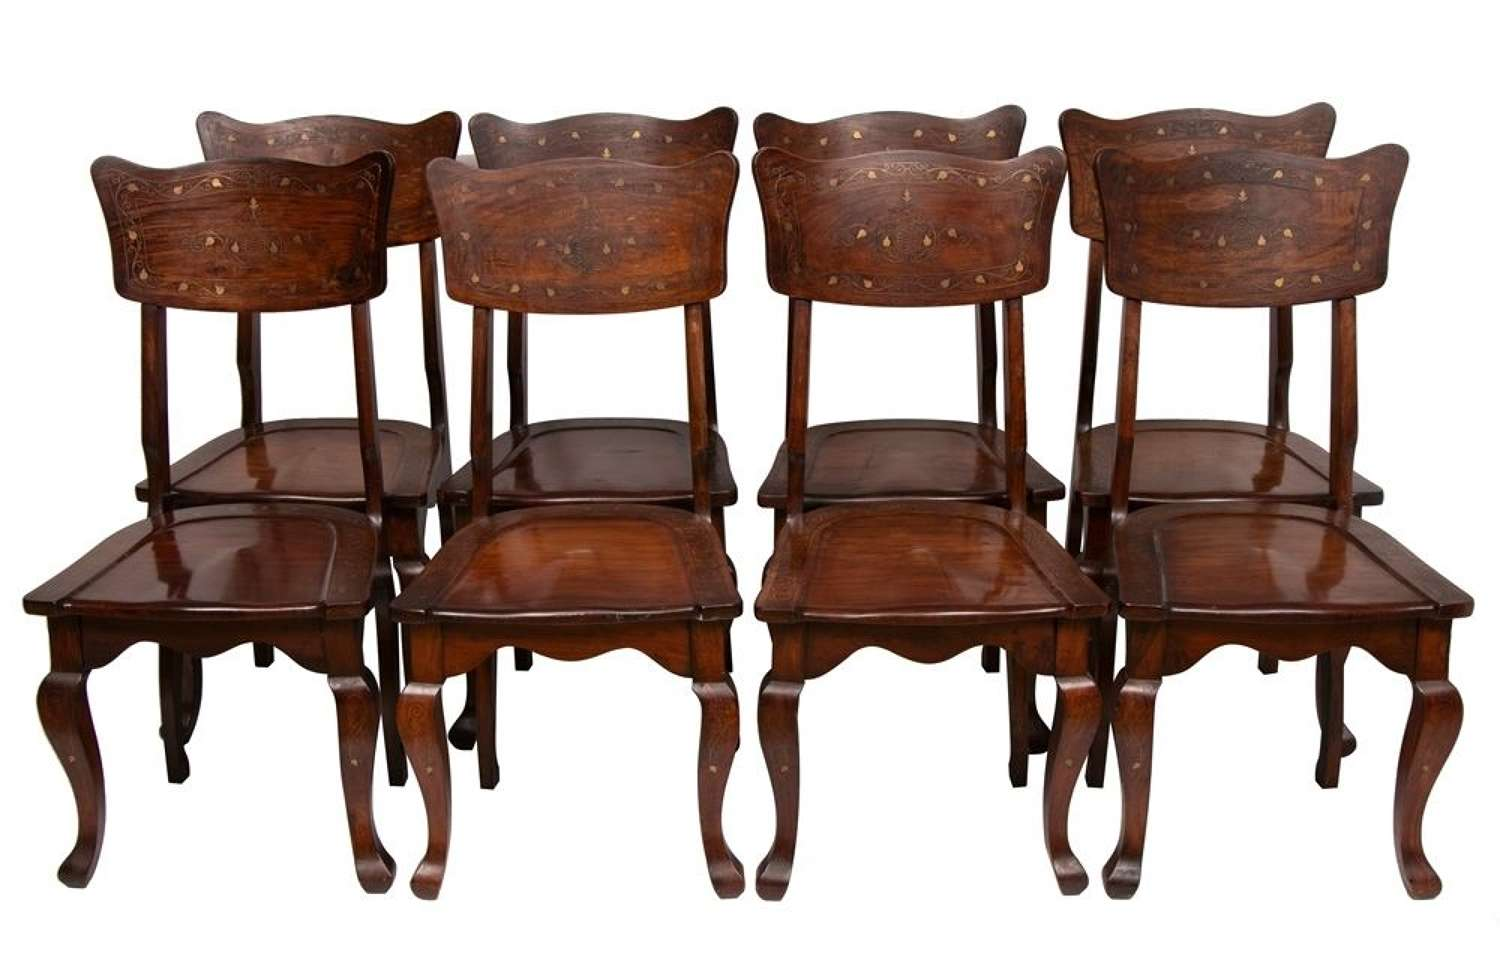 Set of 8 Anglo Indian Brass Inlaid Chairs